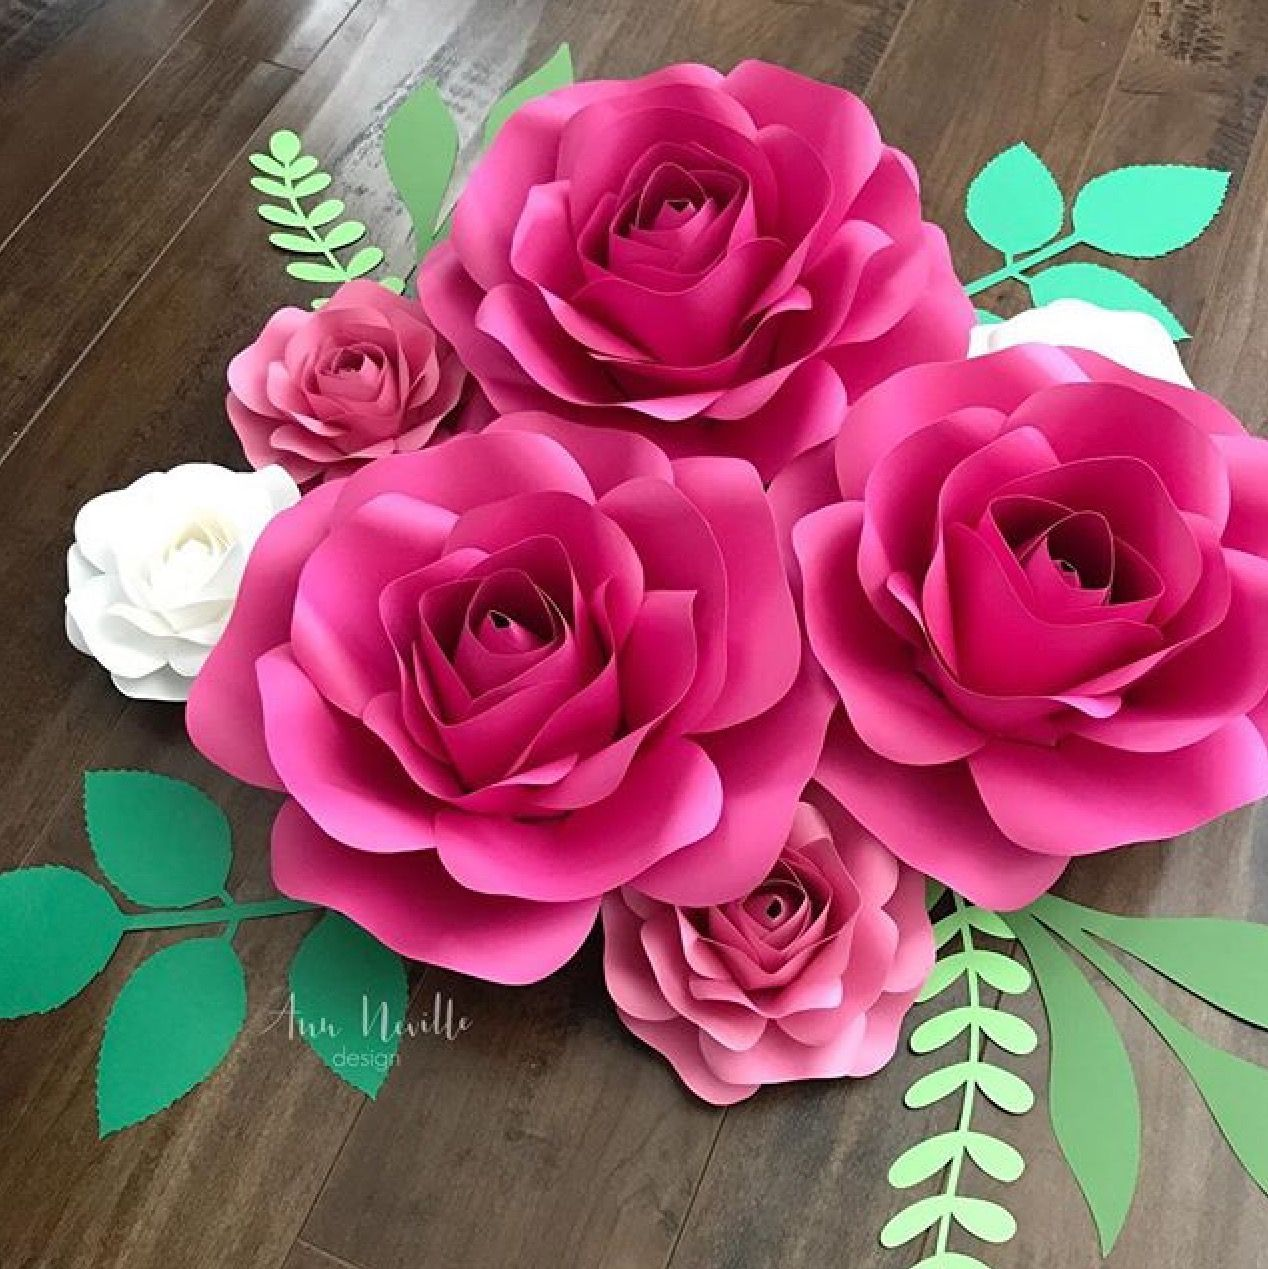 Pin by Penha Maria on artesanato  Pinterest  Flowers Flower and Craft